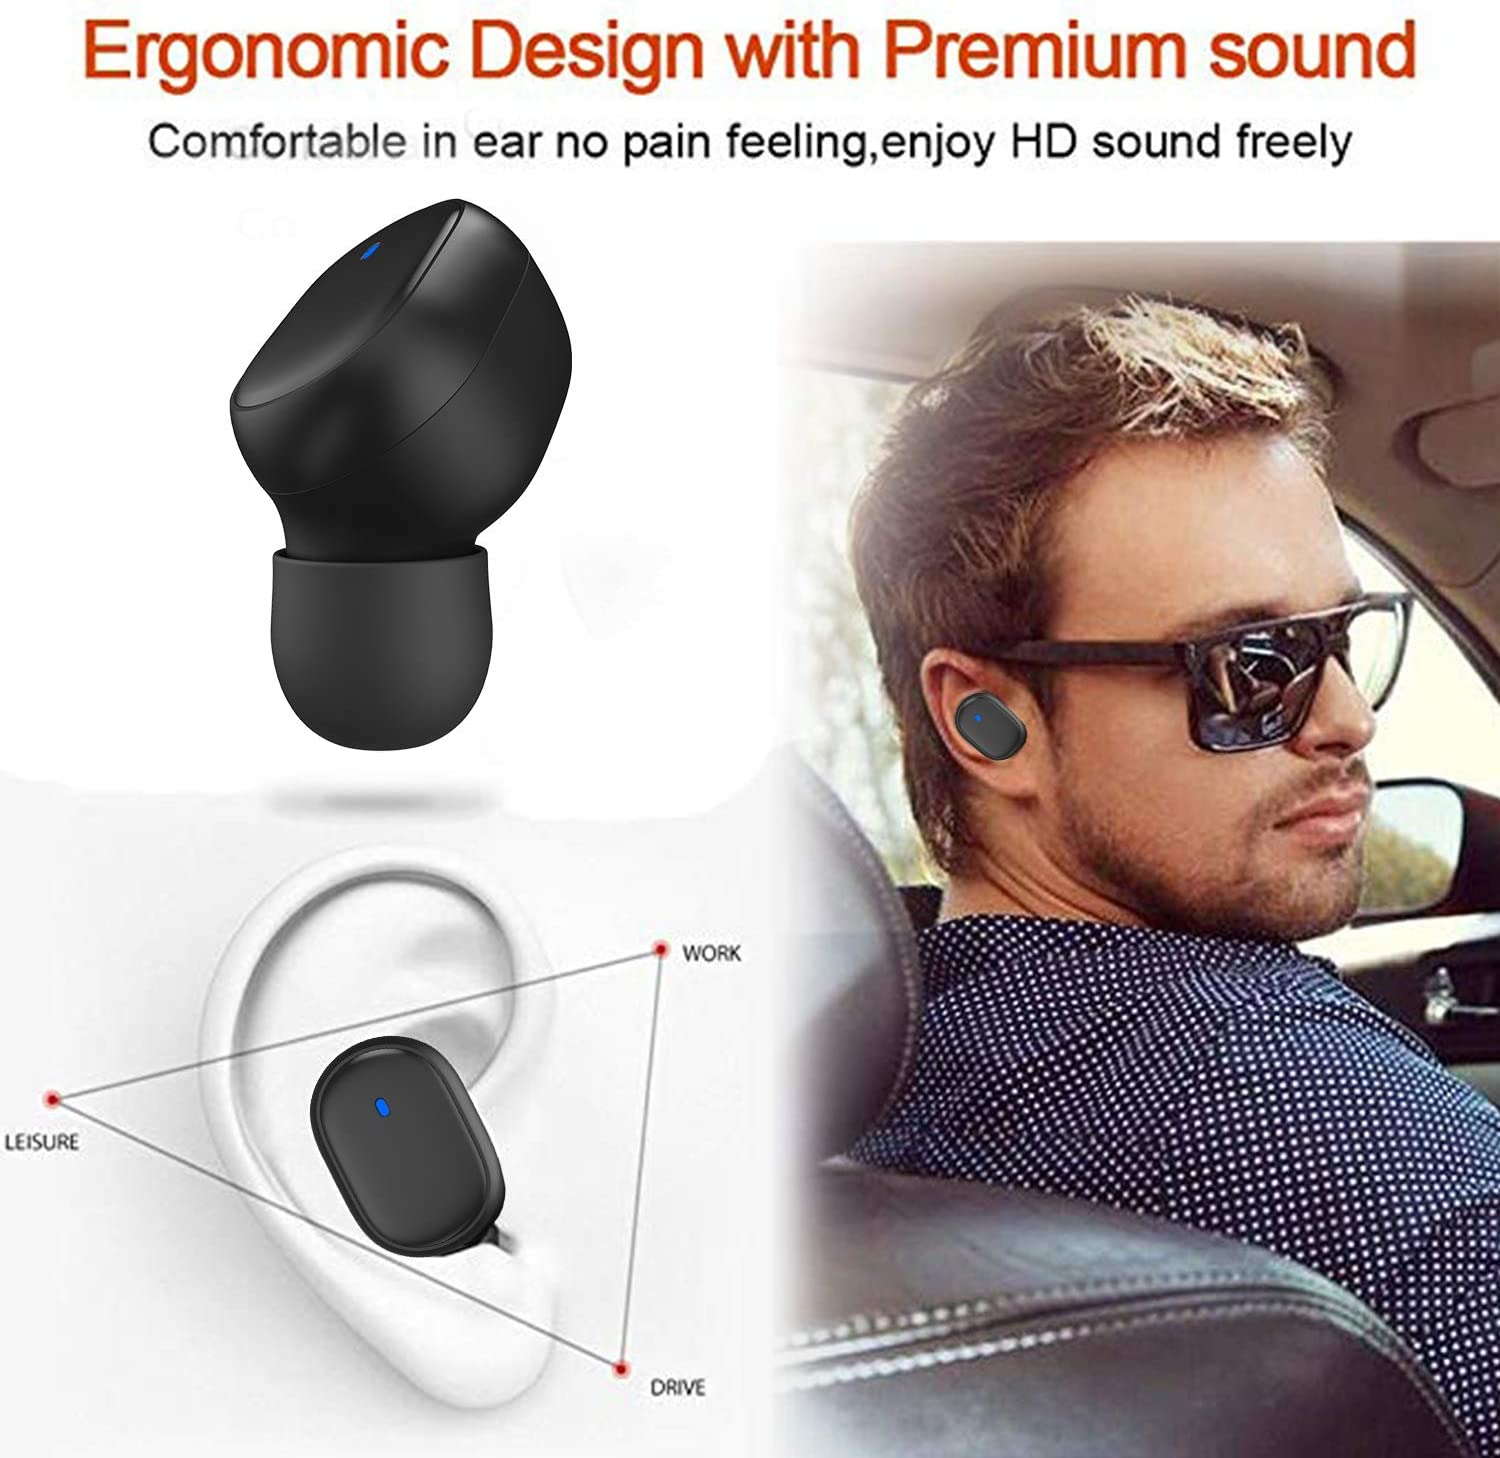 Wireless Built-in Mic Headphones Elegant Portable Charging Case Wireless Headphones for iPhone /& Android IPX4 Sweatproof Noise Cancelling Headset for Sports Earbuds Wireless Earbuds Bluetooth 5.0